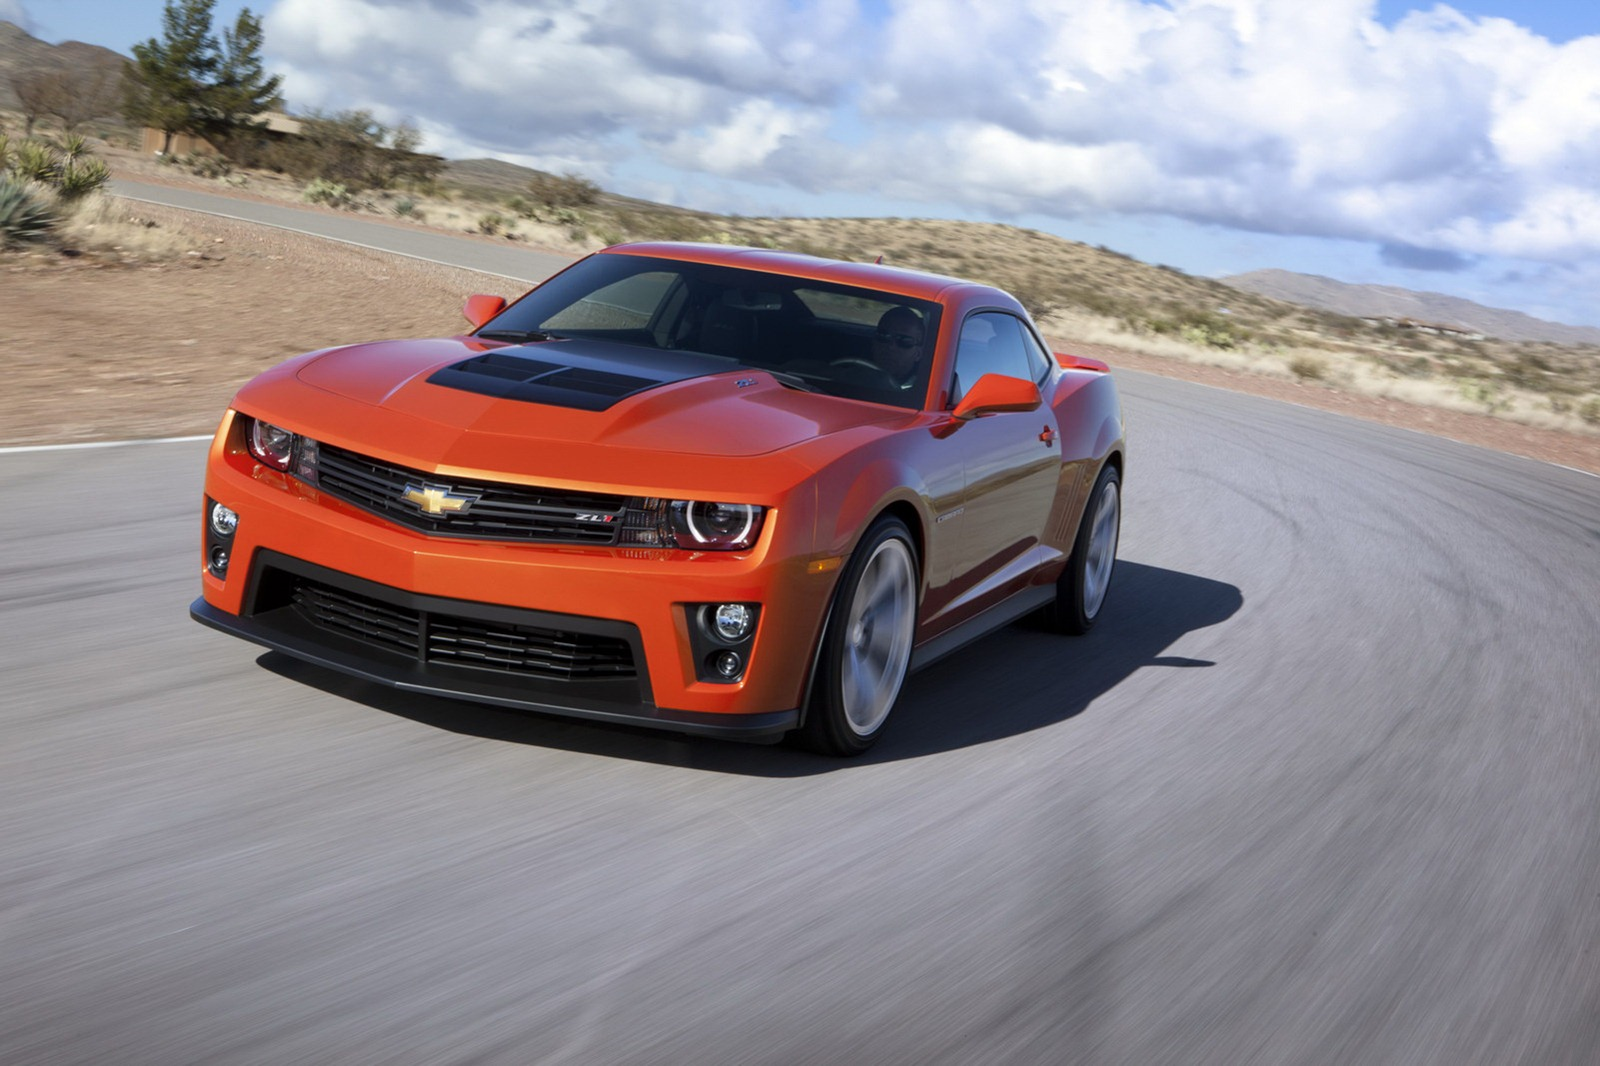 2012 Camaro Zl1 Video 4 Designed For Downforce